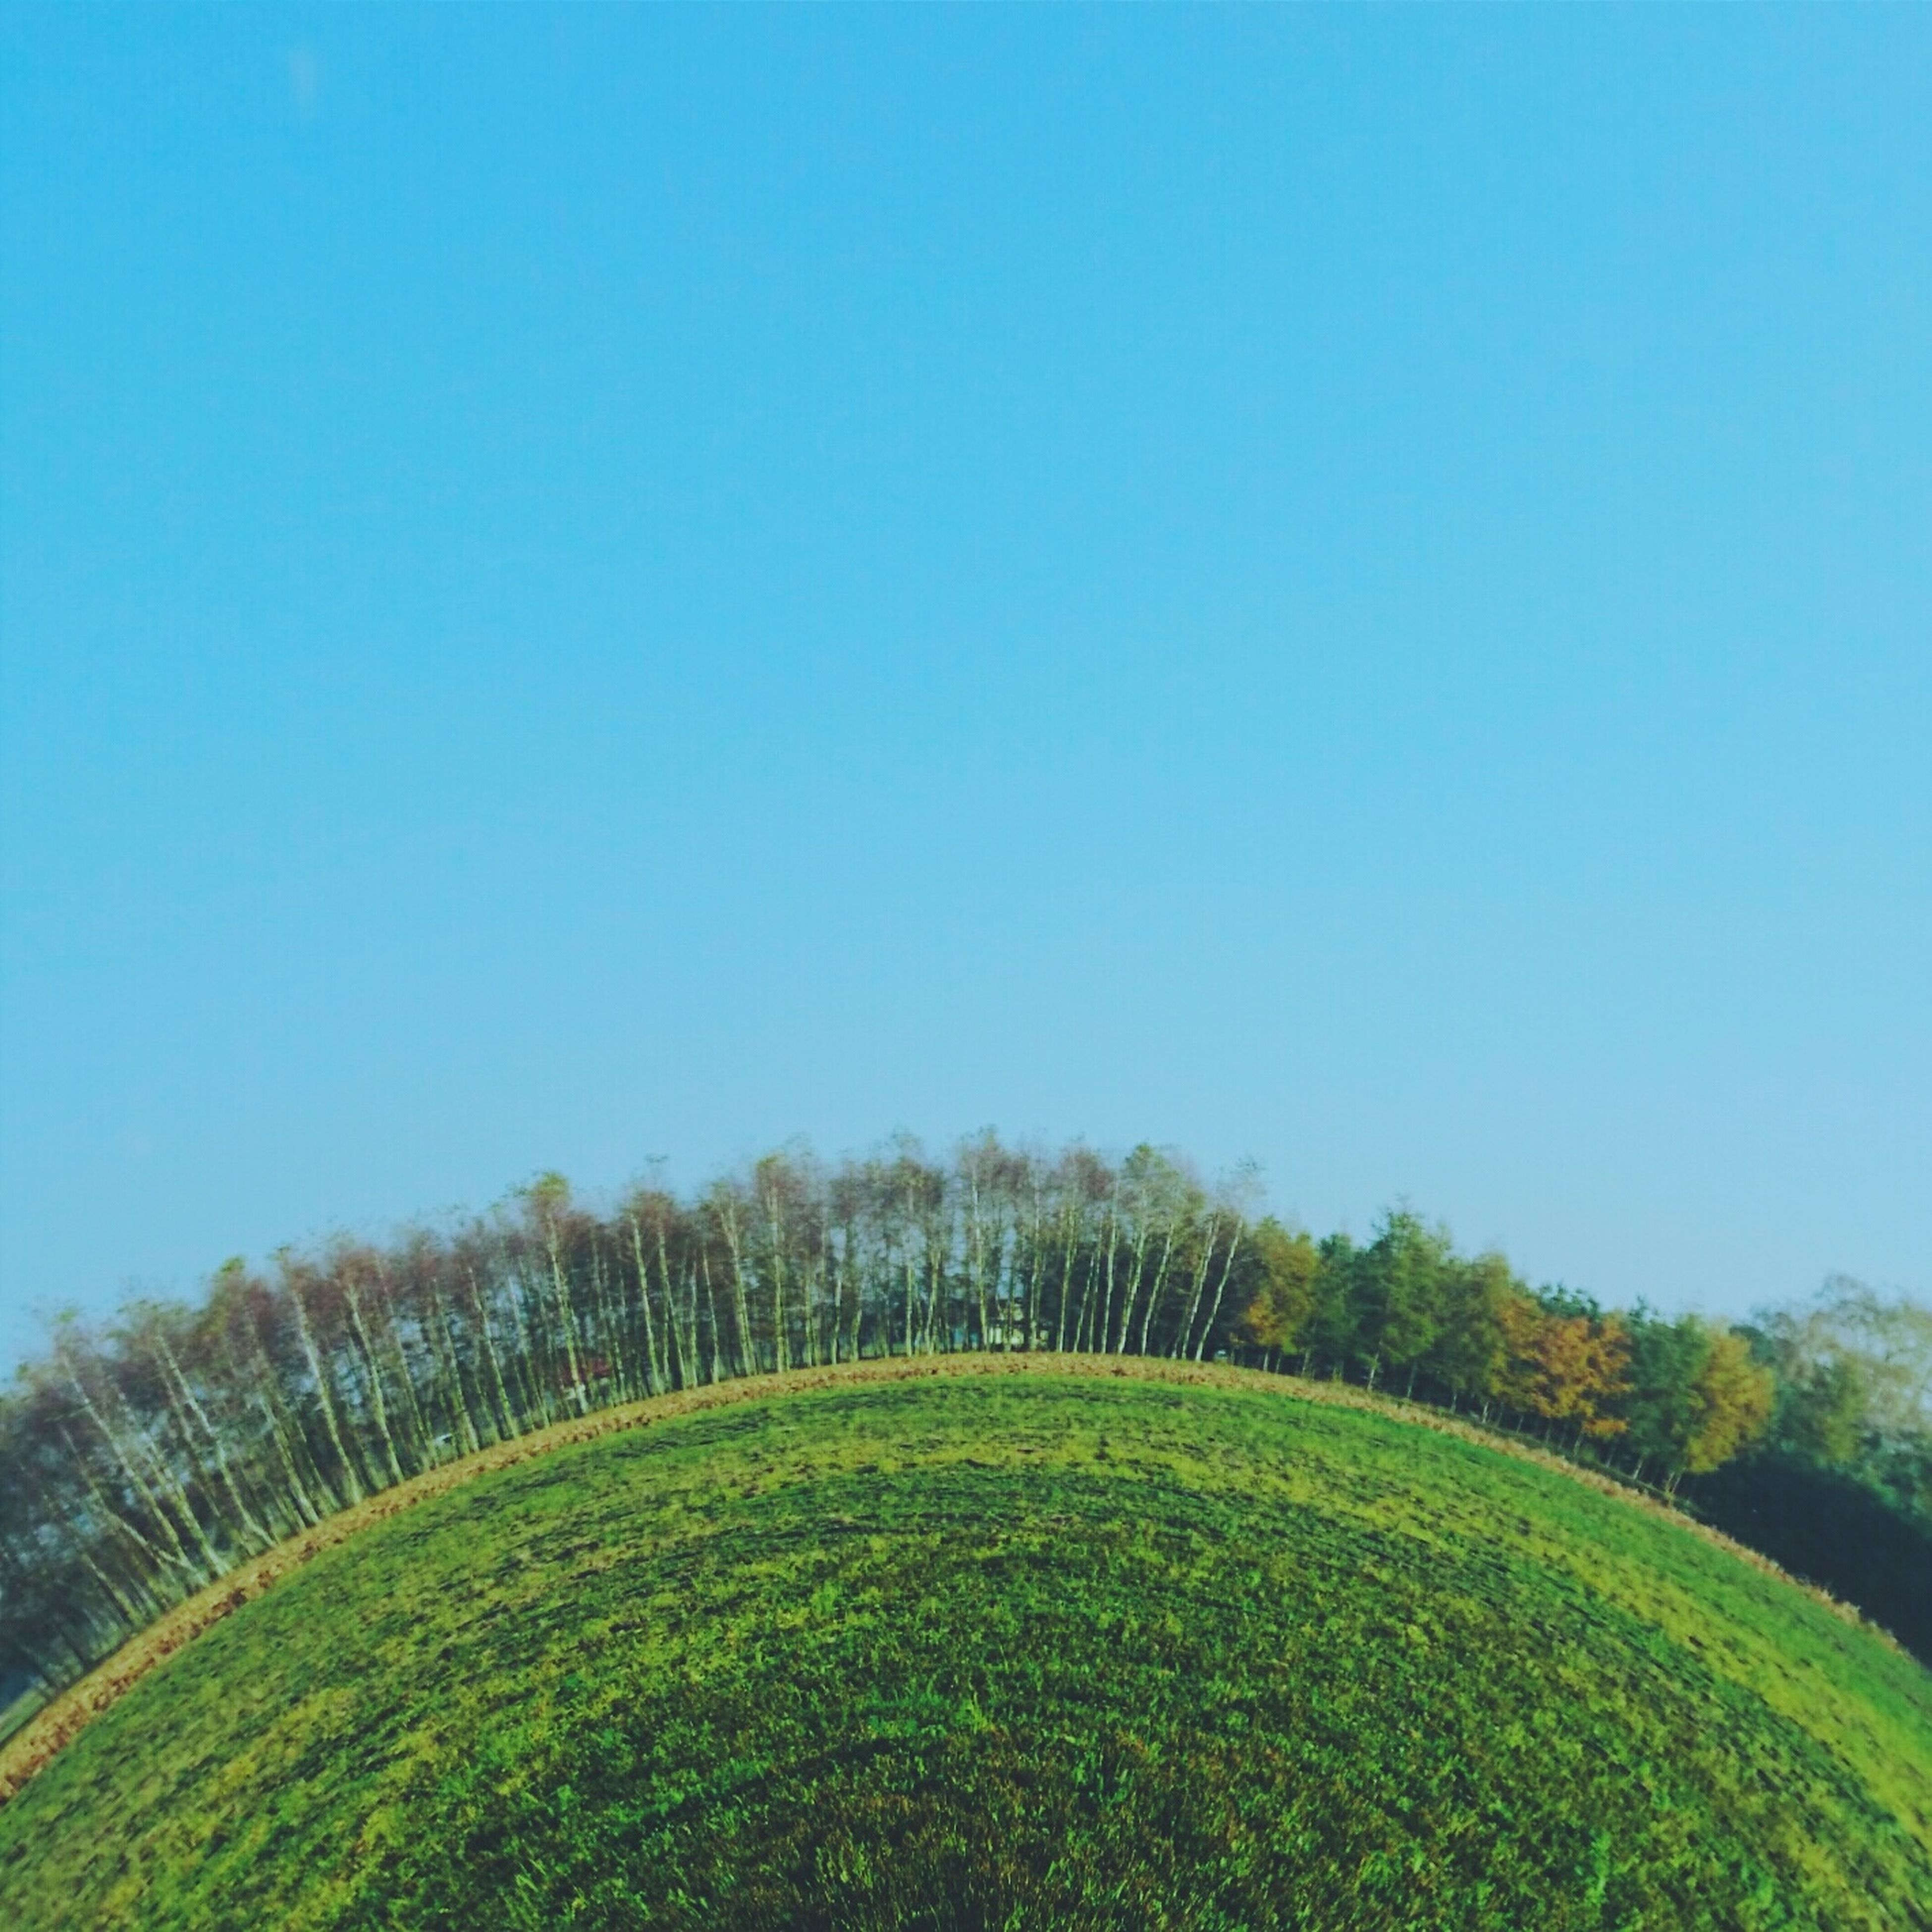 clear sky, copy space, tree, blue, growth, tranquility, tranquil scene, beauty in nature, green color, nature, field, landscape, scenics, grass, green, plant, day, outdoors, idyllic, no people